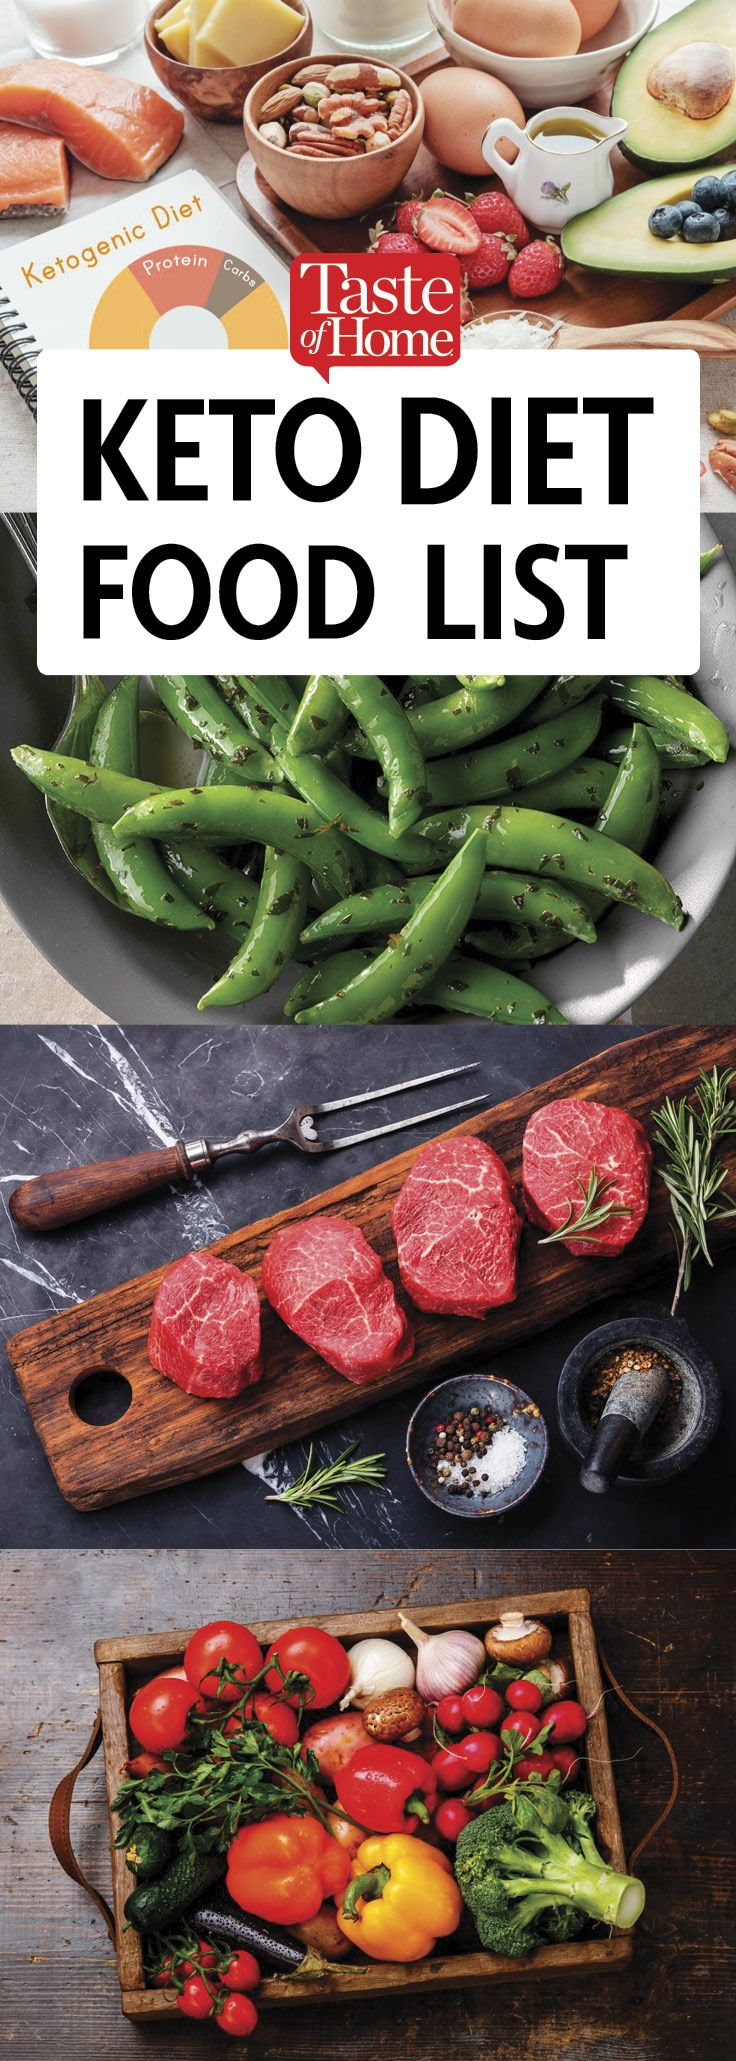 Heres what you can eat on the keto diet keto diet food